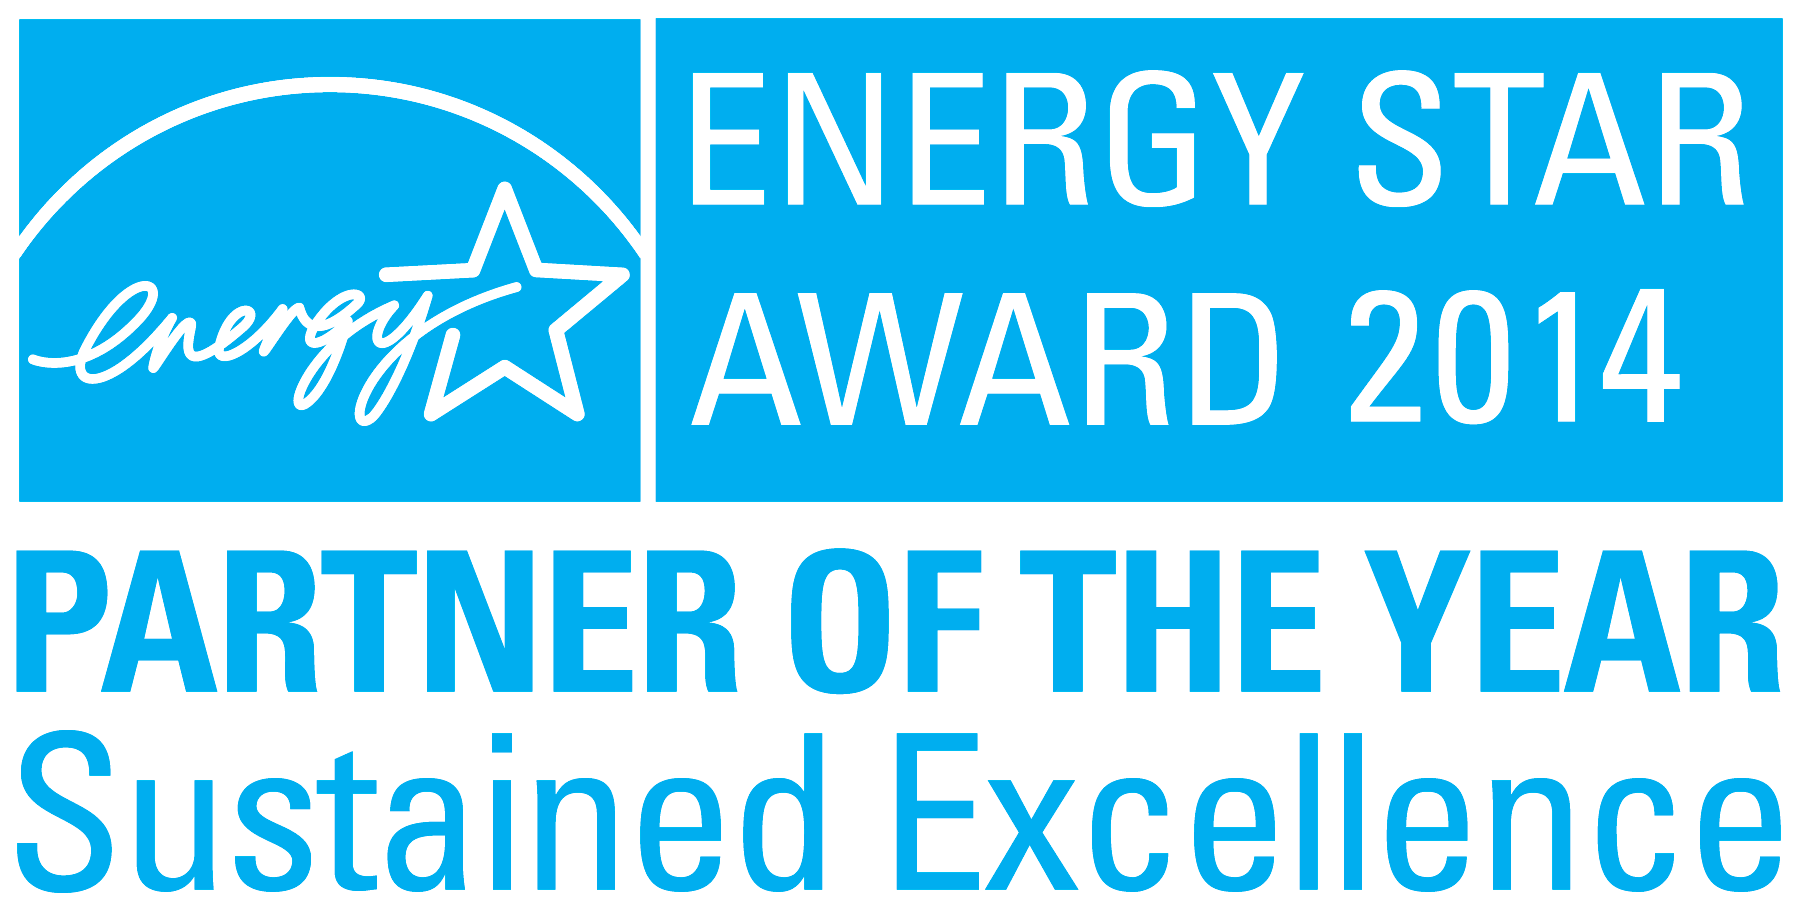 ENERGY STAR 2014 POY Sustained Excellence award logo